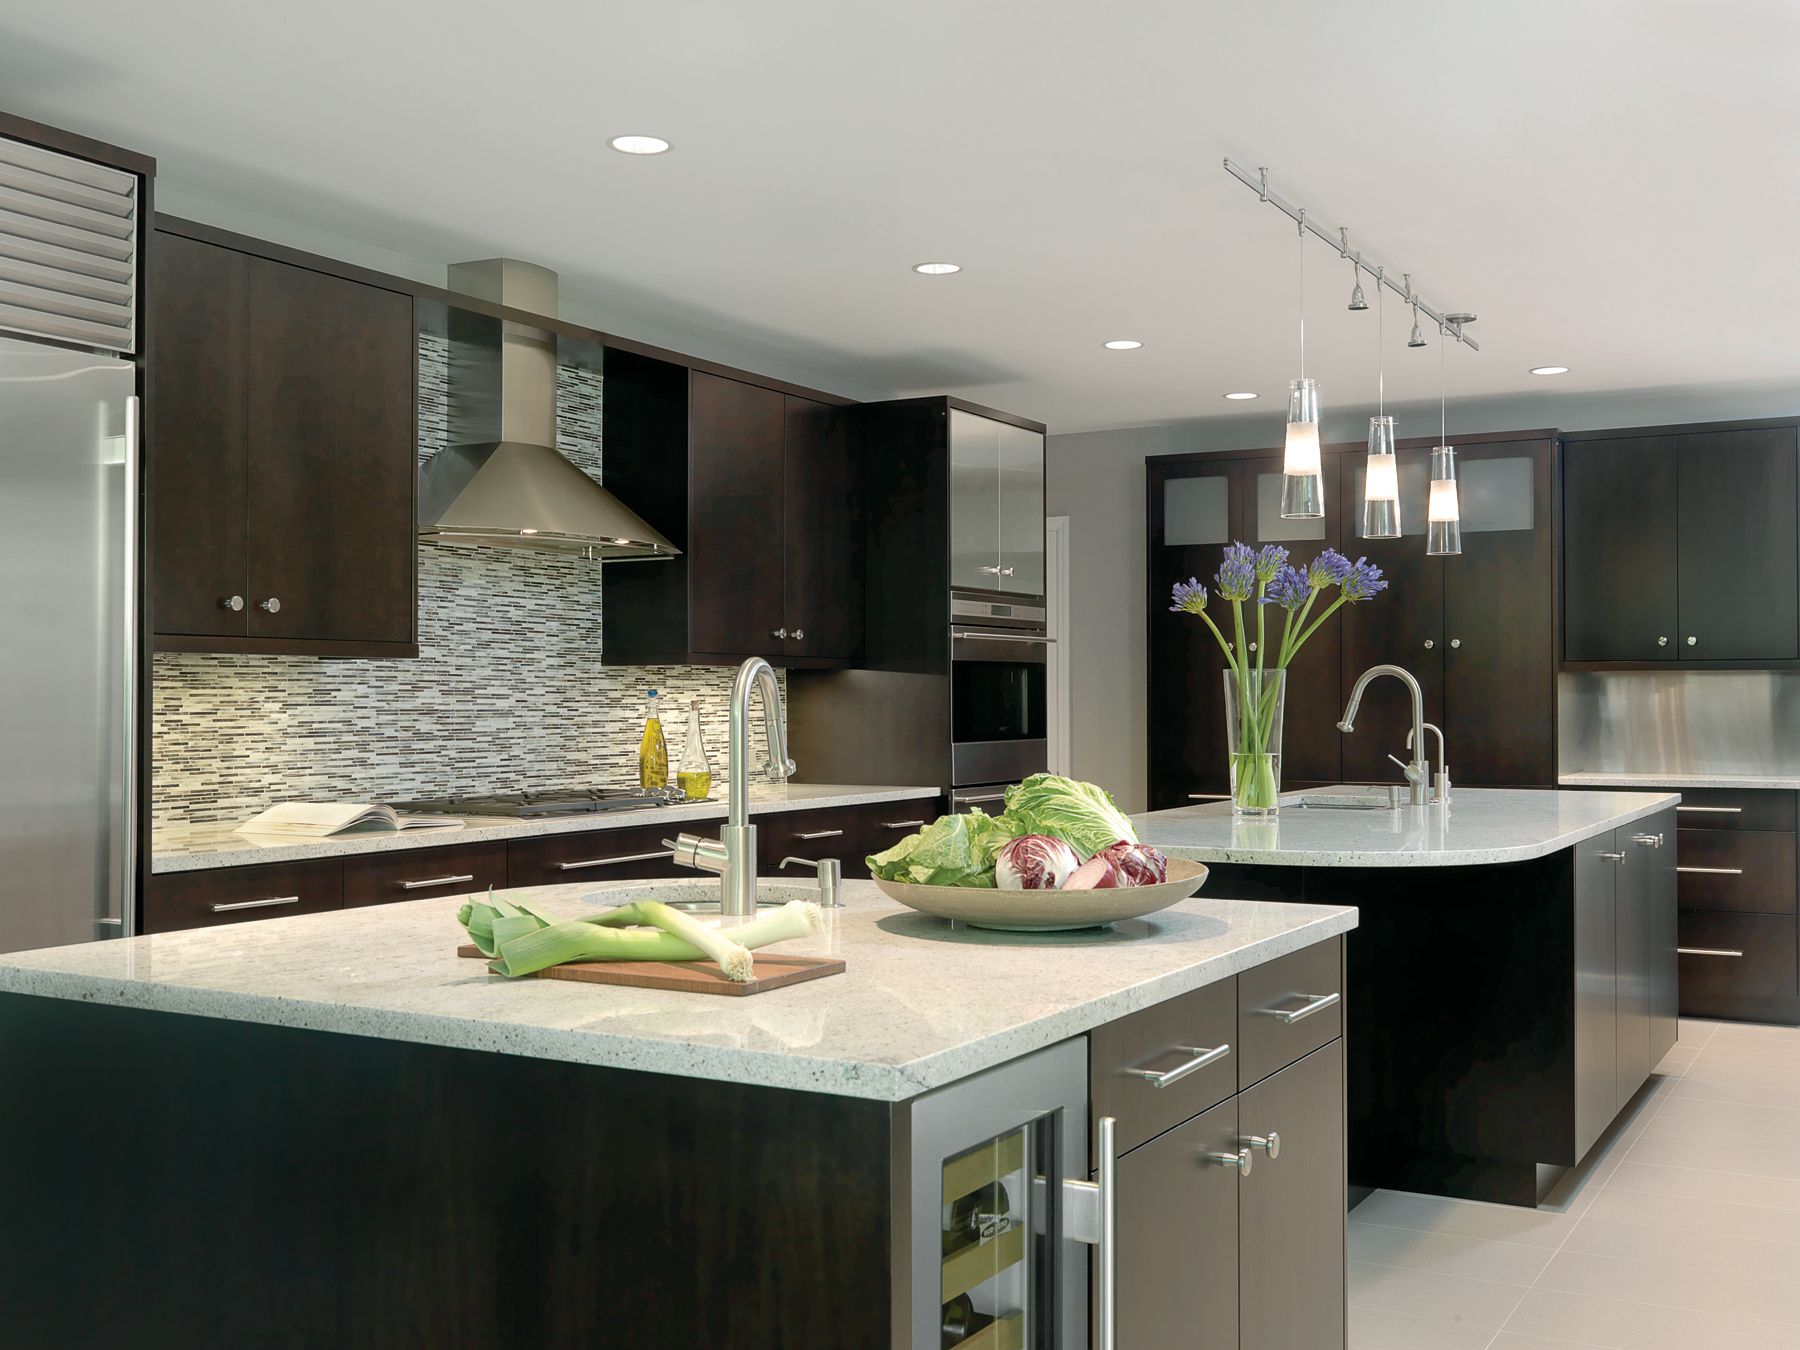 Award Winning Kitchen Layouts Winner Less Than 250 Square Feet Glen Alspaugh Kitchens